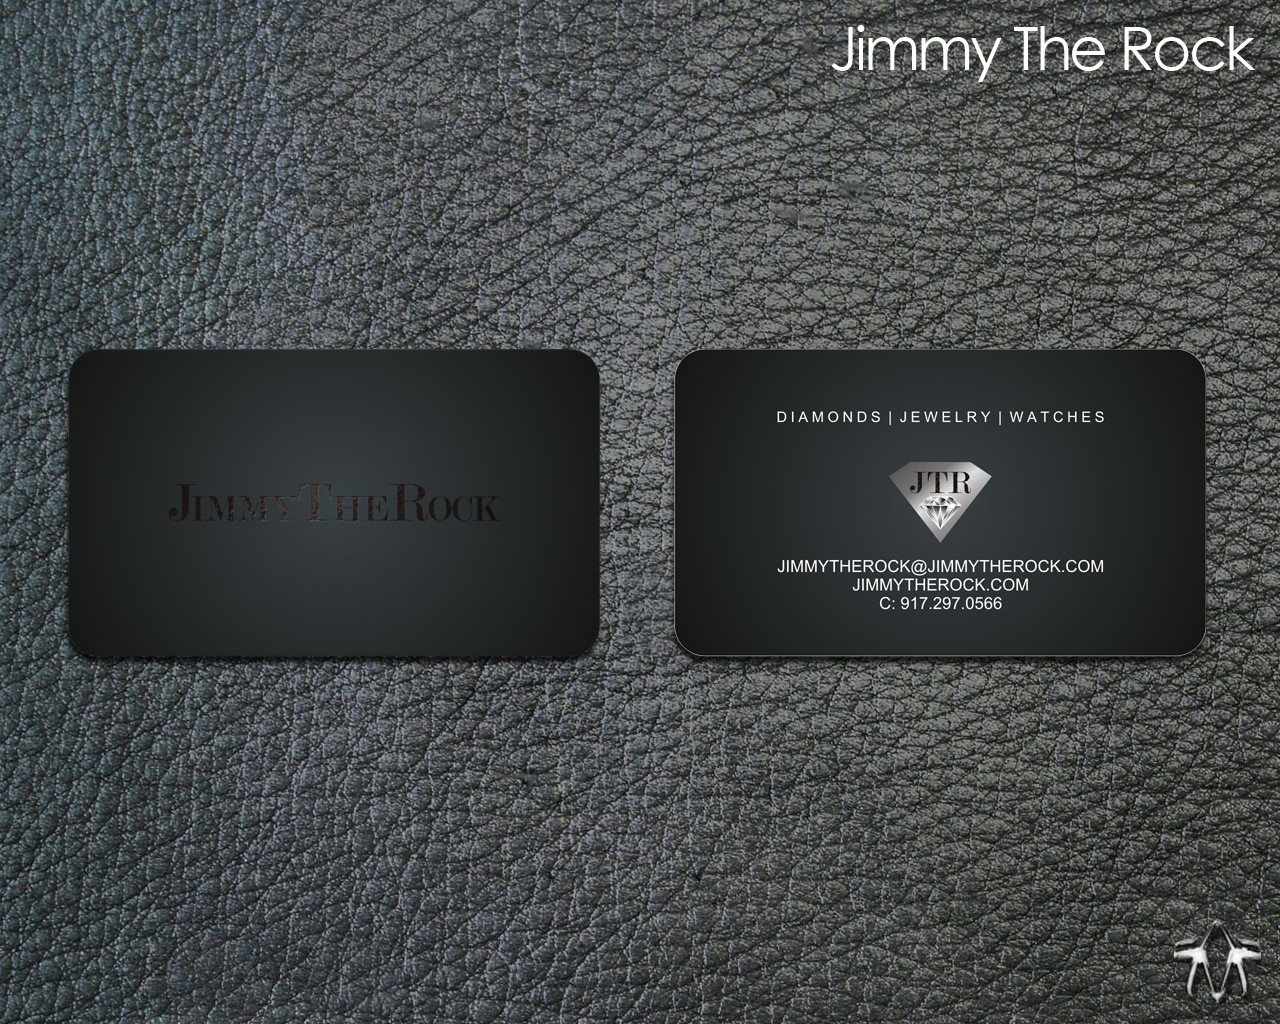 Jimmy The Rock needs a new stationery